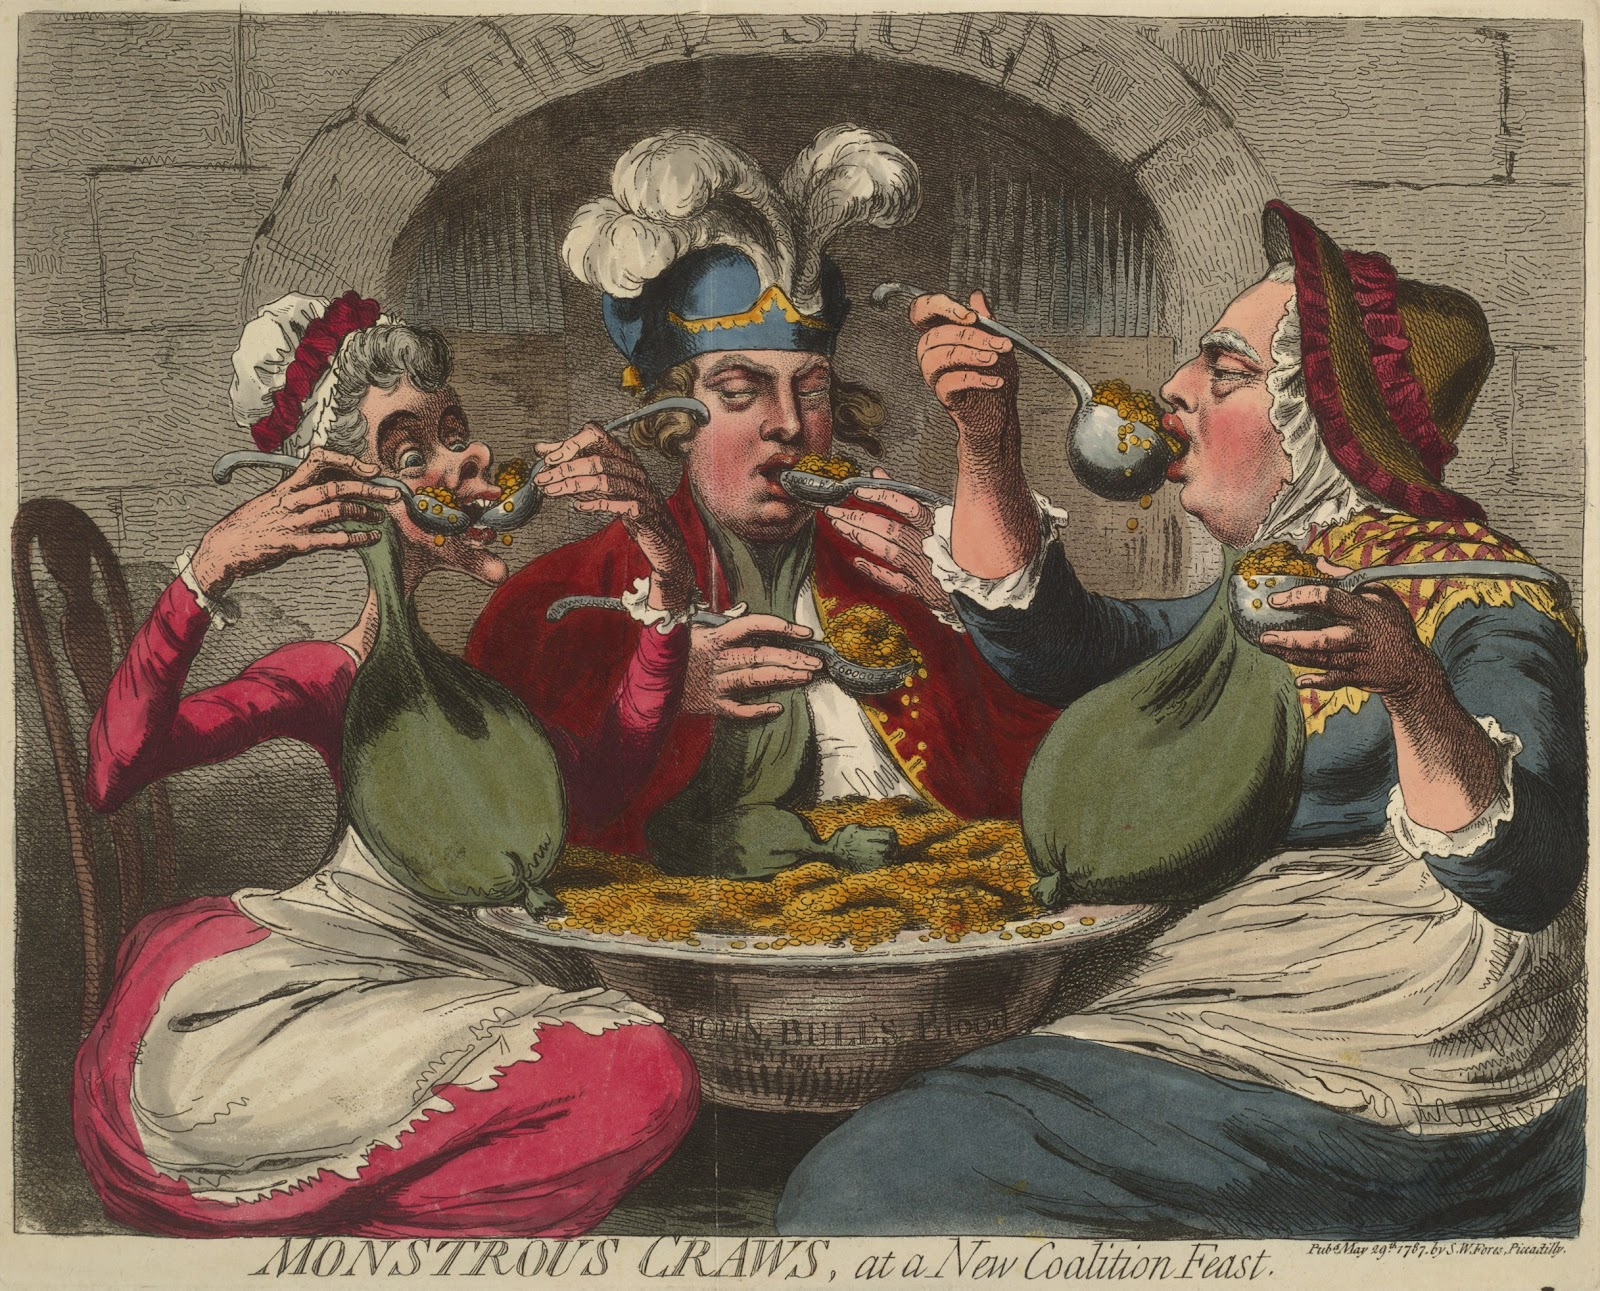 Gillray Monstrous_craws,_at_a_new_coalition_feast